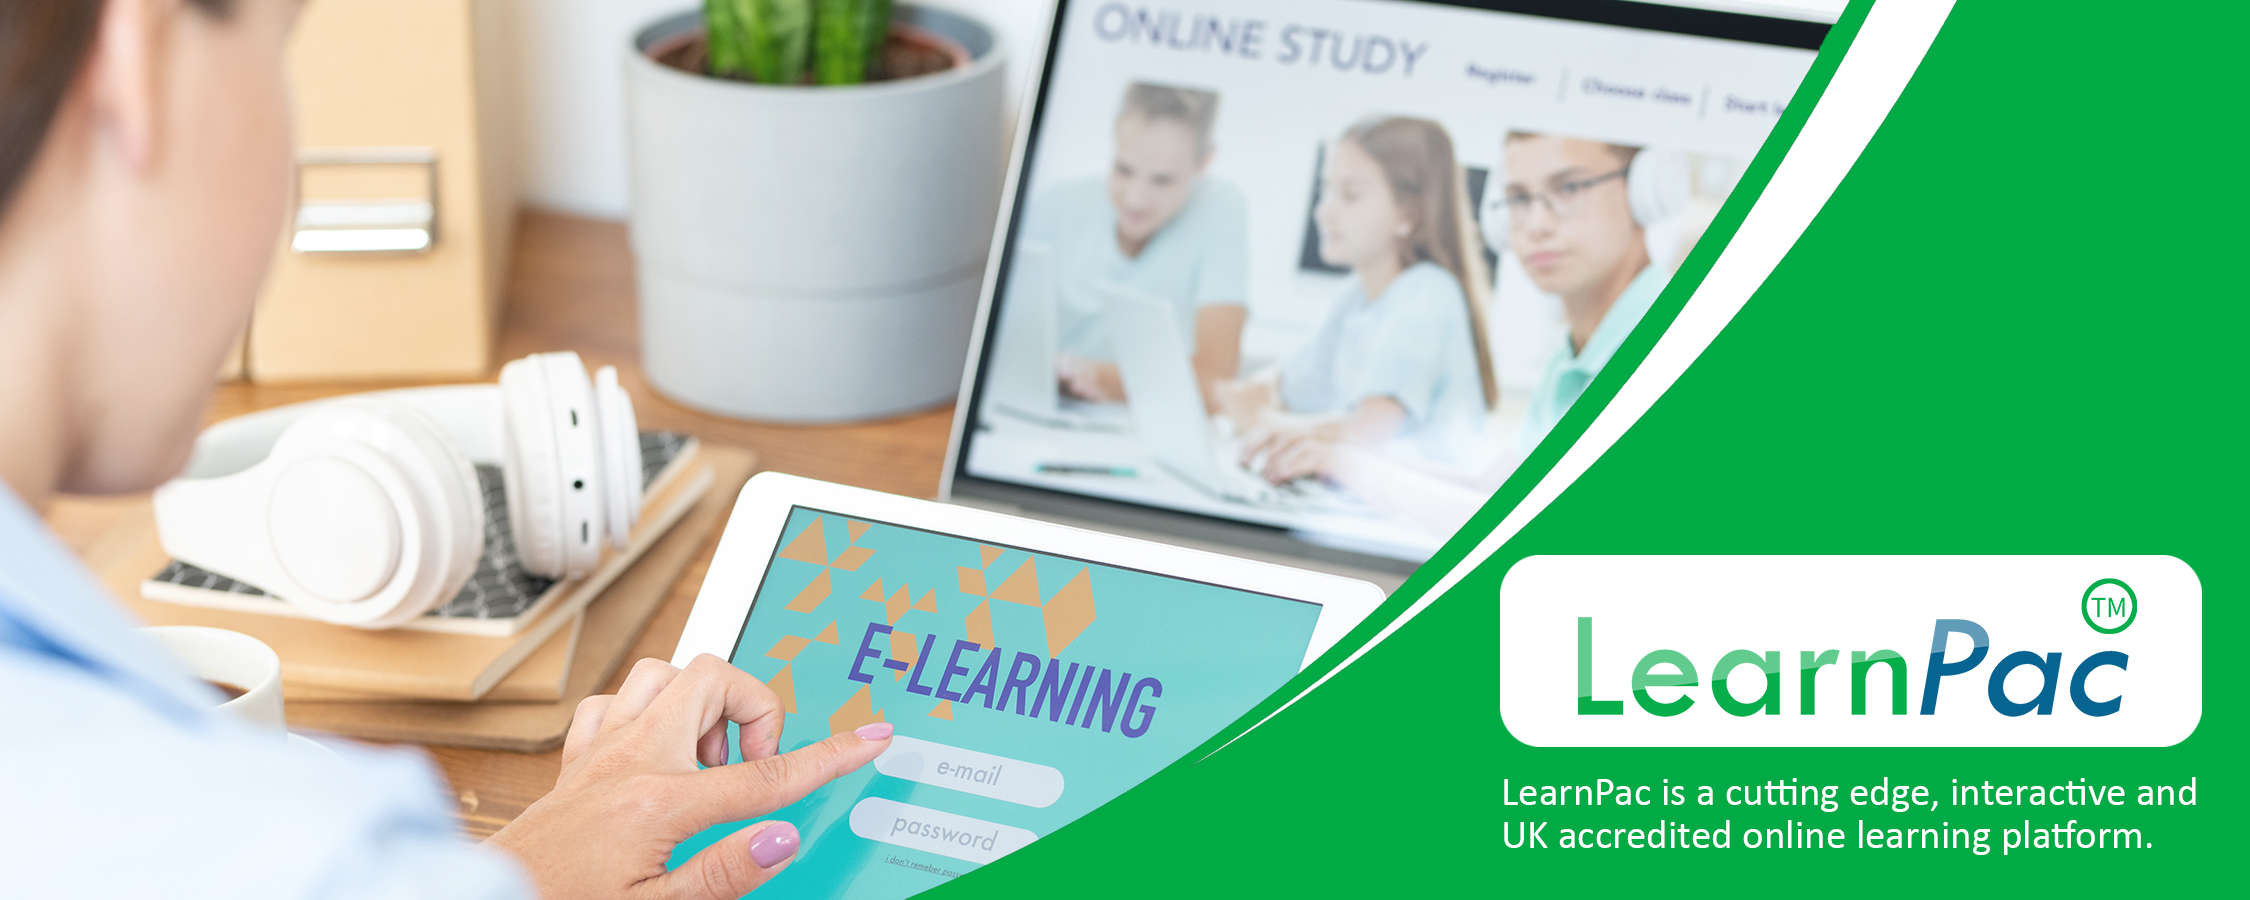 Moving and Handling People - Online Learning Courses - E-Learning Courses - LearnPac Systems UK -